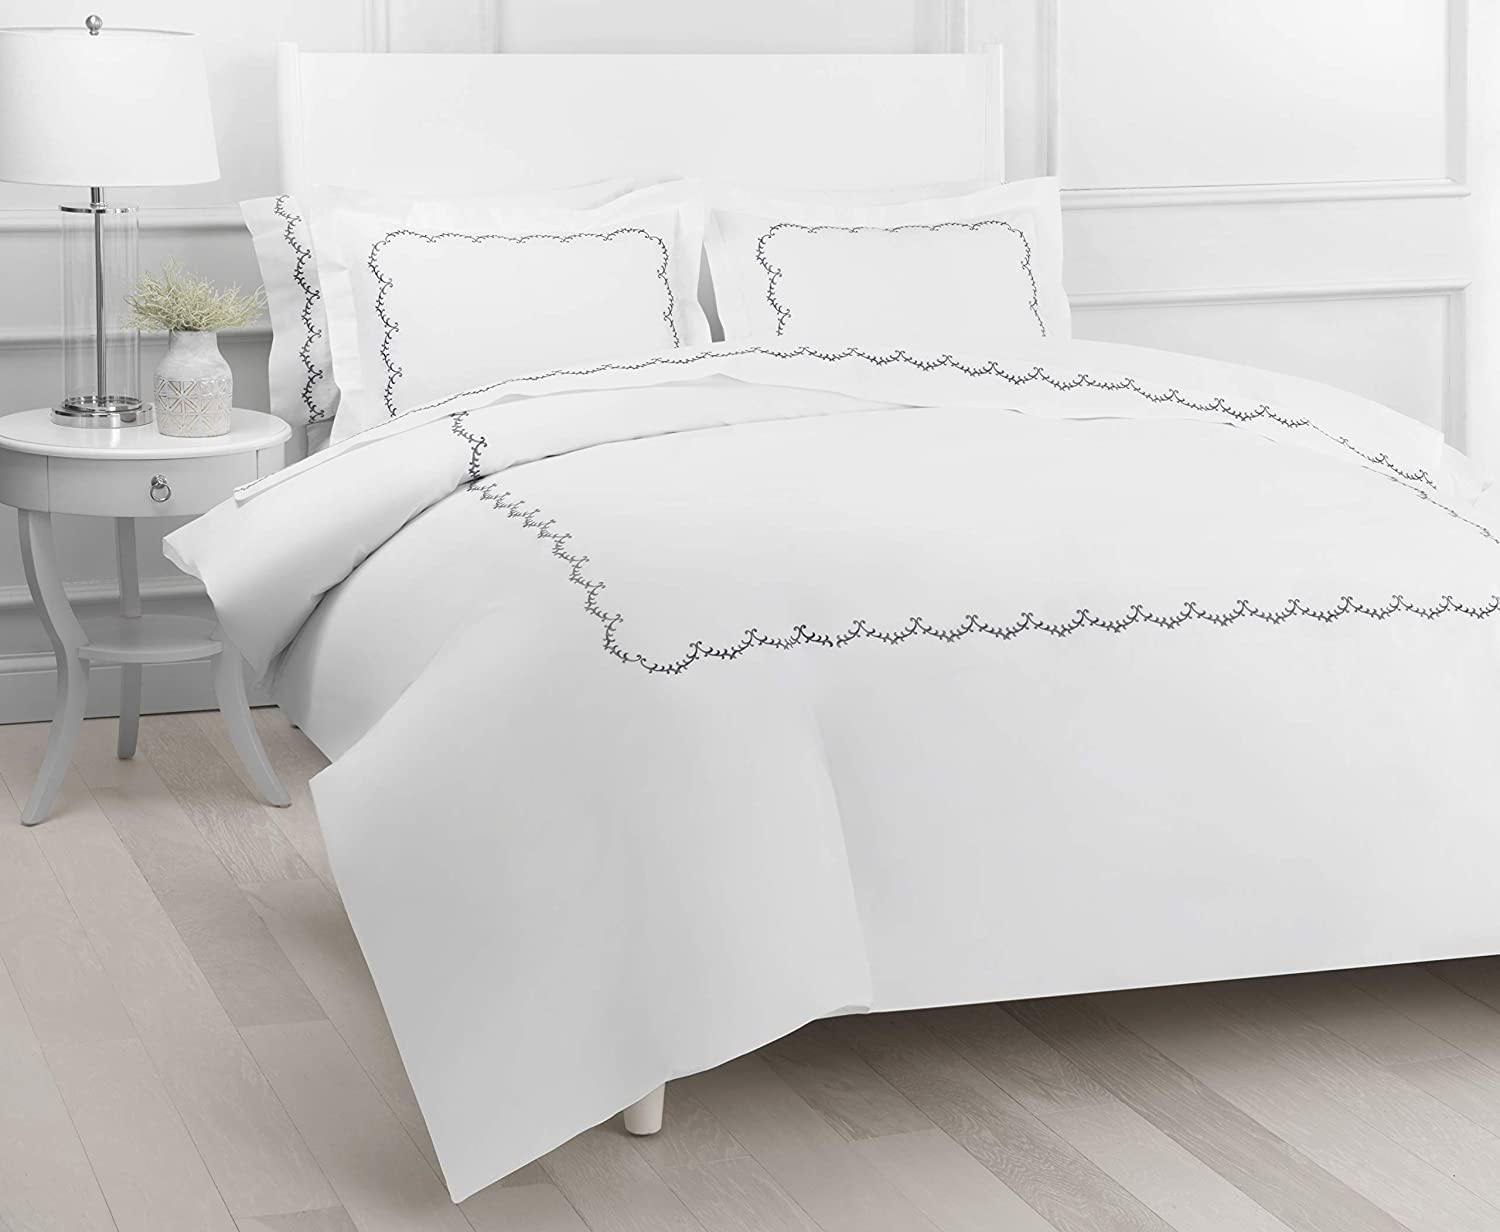 Melange Home Percale Cotton Laurier Embroidery Duvet Set, Full/Queen, White on White